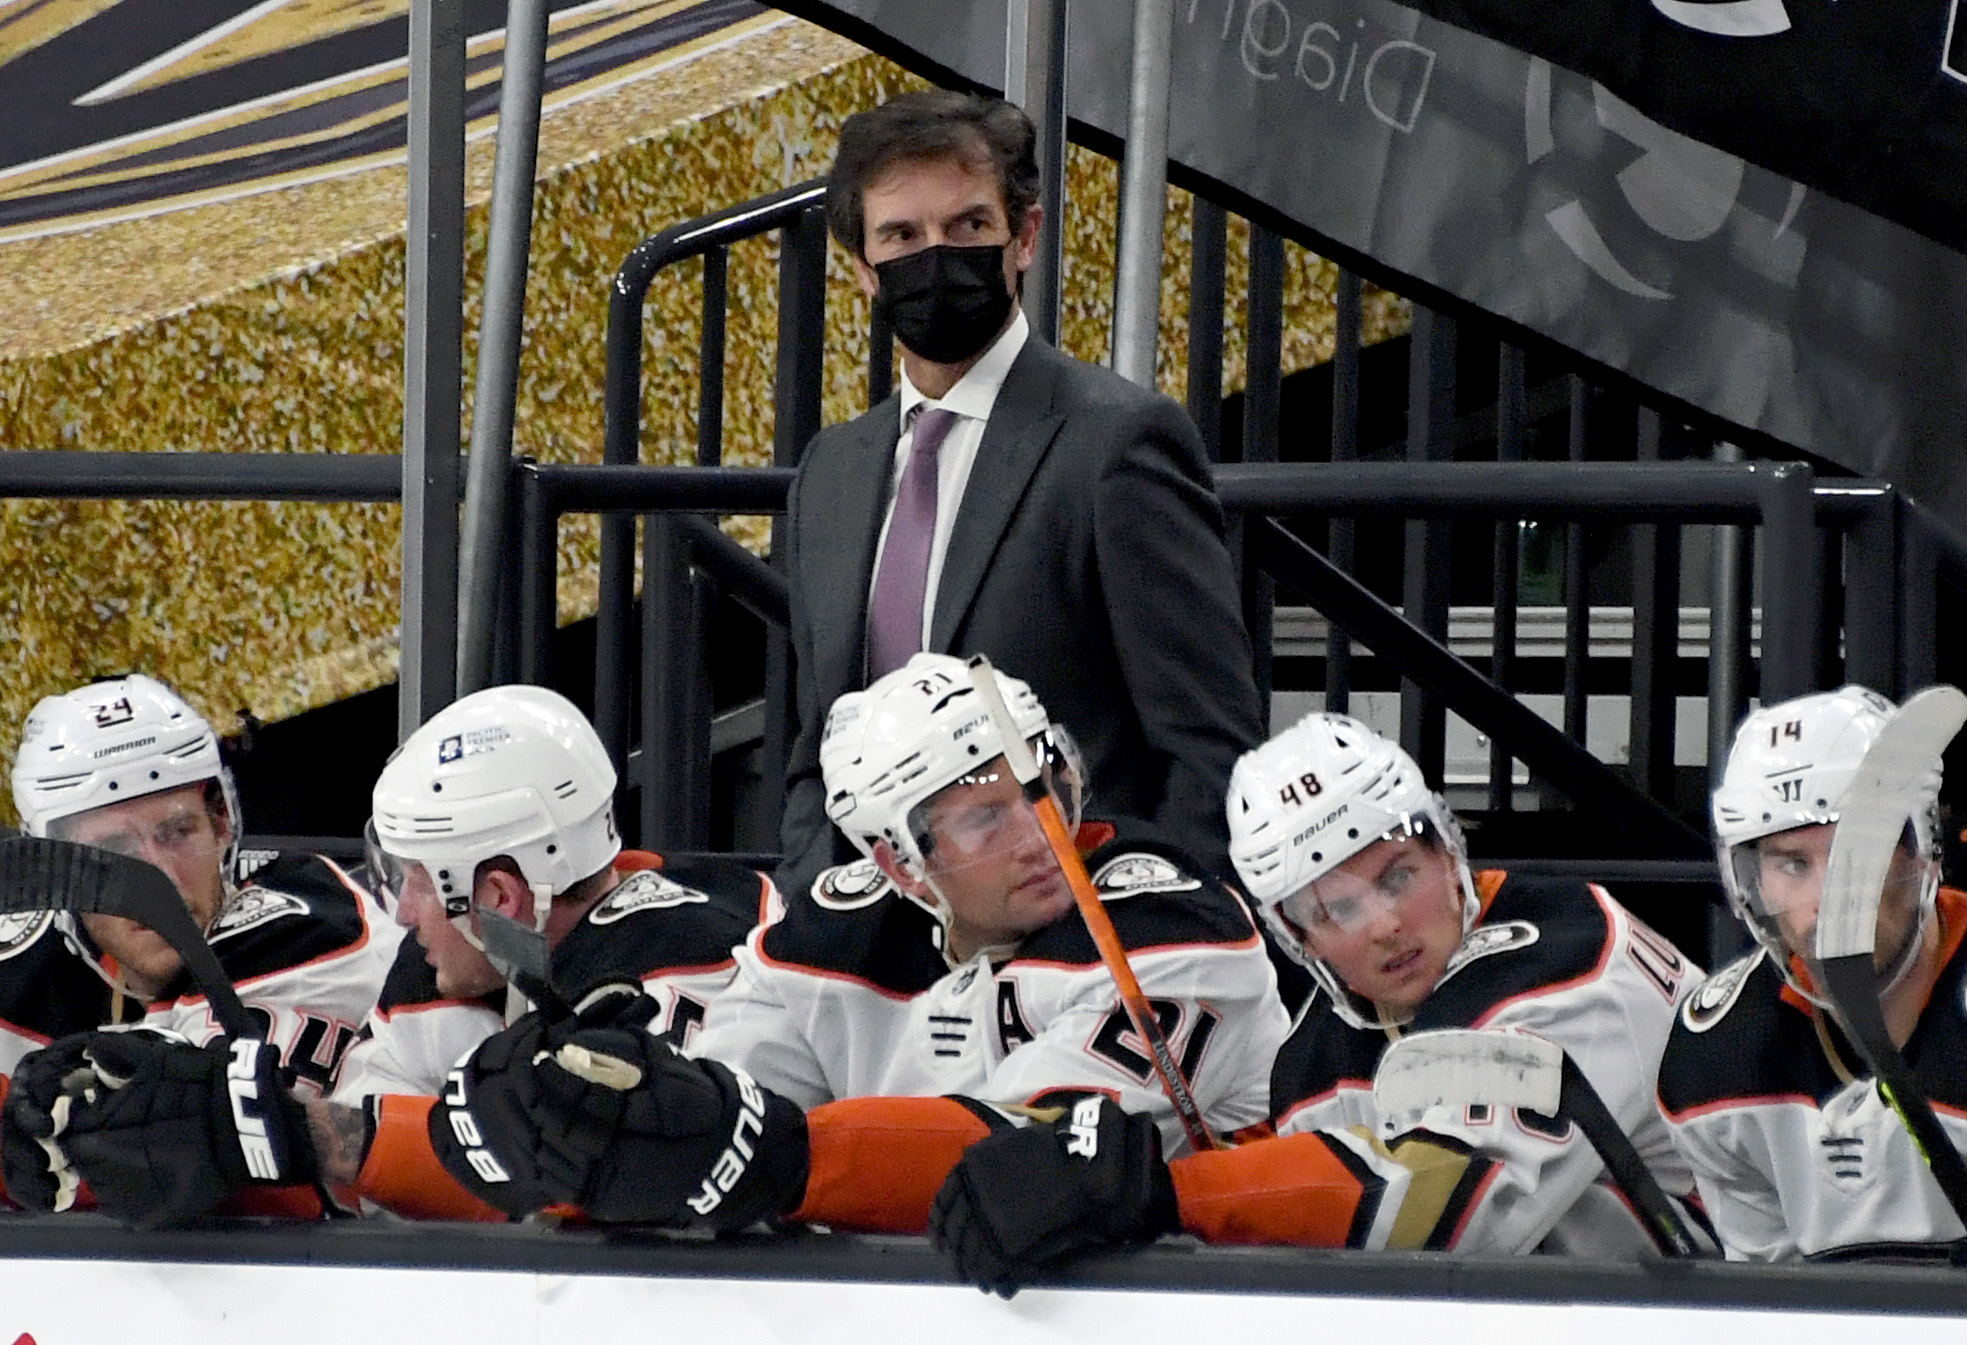 Head coach Dallas Eakins of the Anaheim Ducks handles bench duties in the third period of a game against the Vegas Golden Knights at T-Mobile Arena on February 9, 2021 in Las Vegas, Nevada. The Golden Knights defeated the Ducks 5-4.